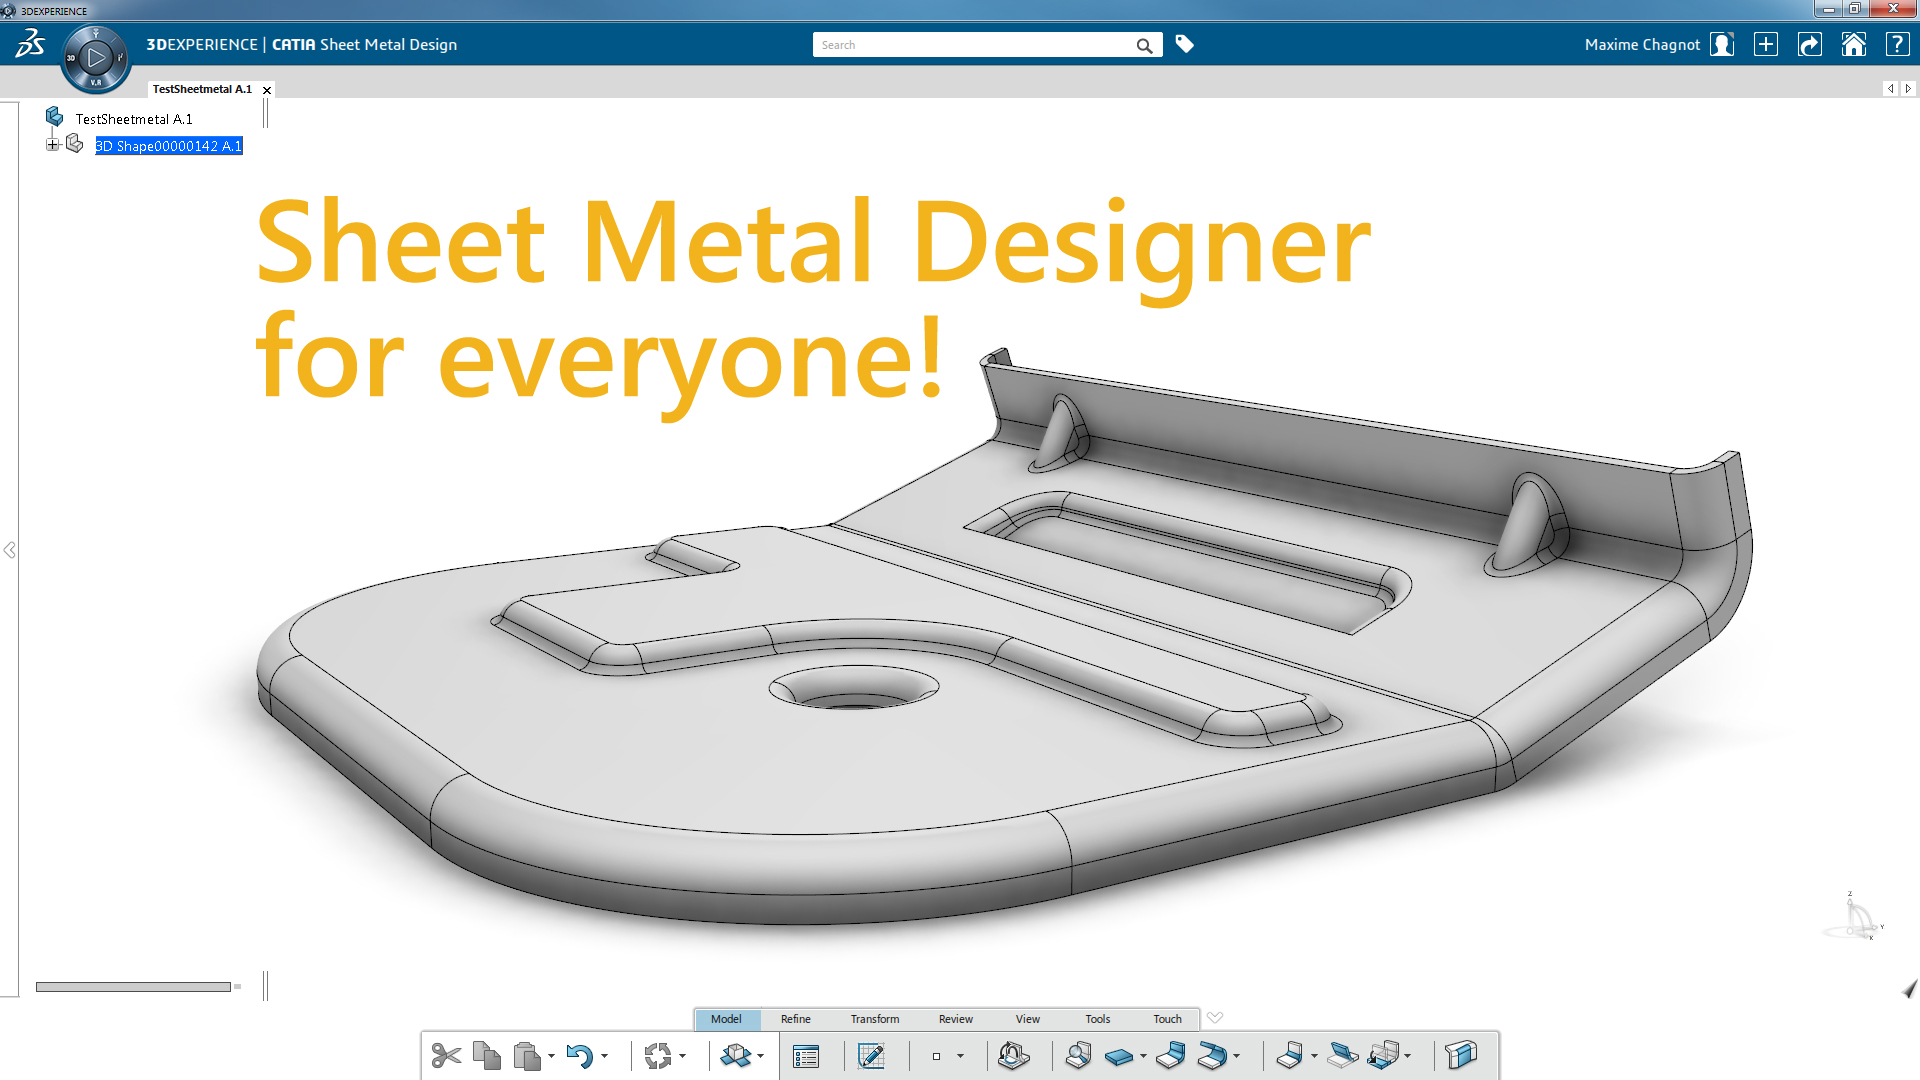 Design Sheetmetal parts with the correct CATIA Package!